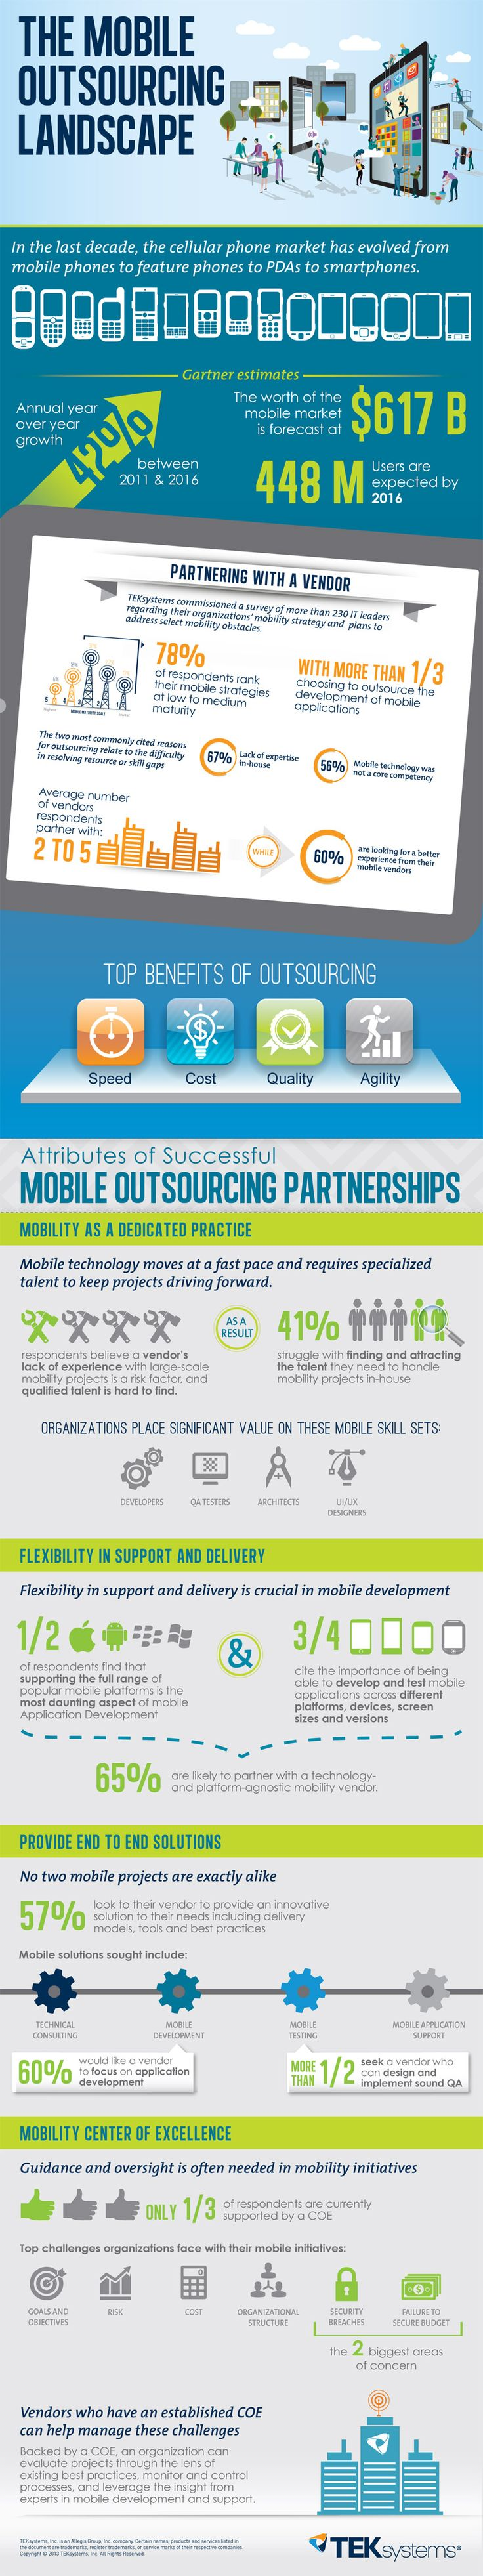 The Mobile Outsourcing Landscape